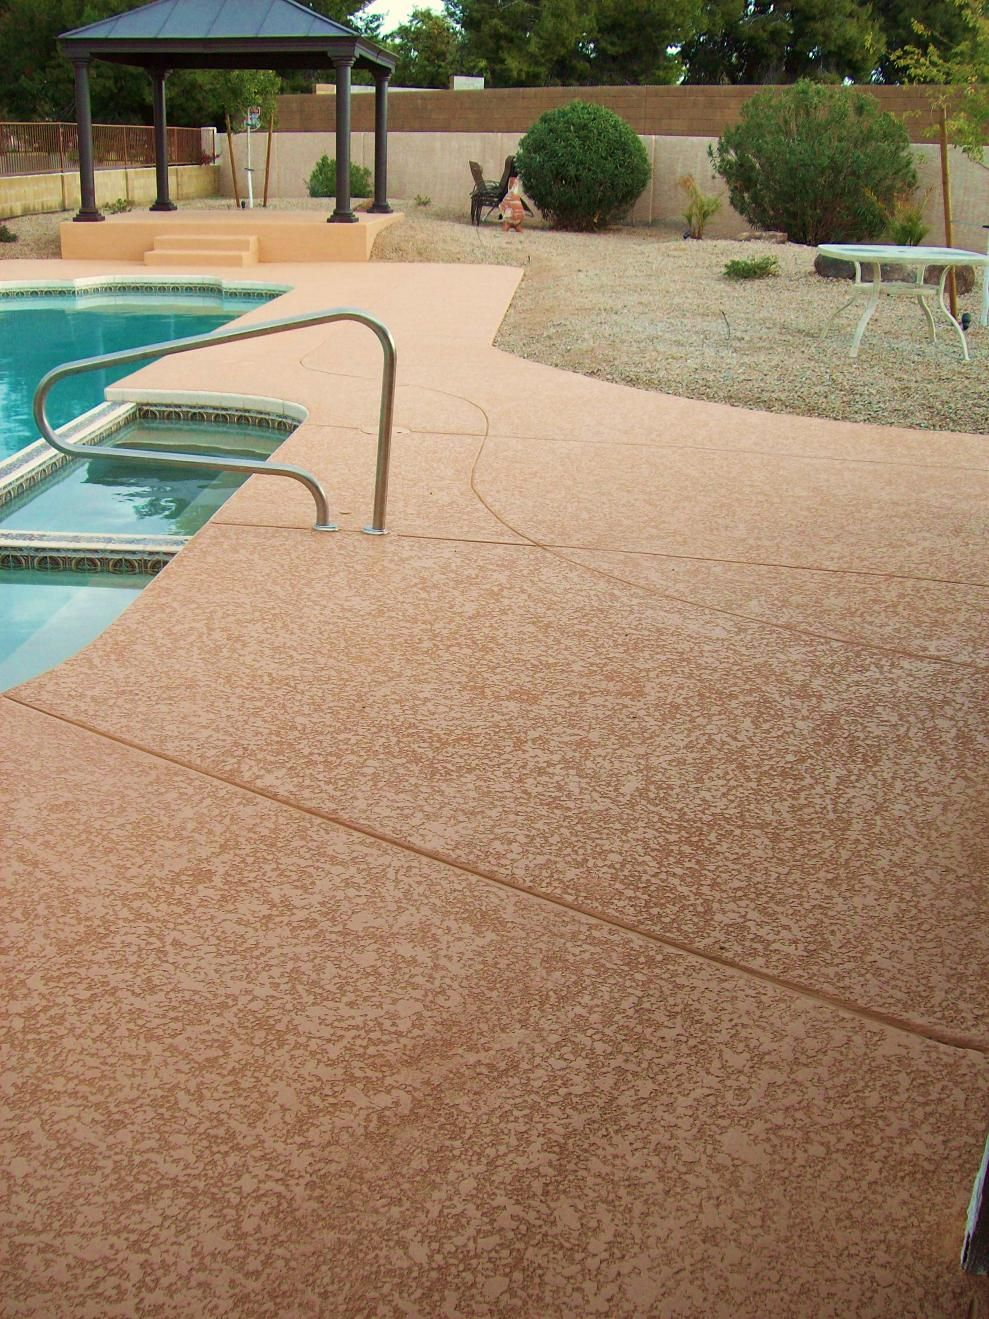 Pool Decking Ideas Concrete concrete pool decks Stained Concrete Foundations Pool Deck Lace Micro Toppings